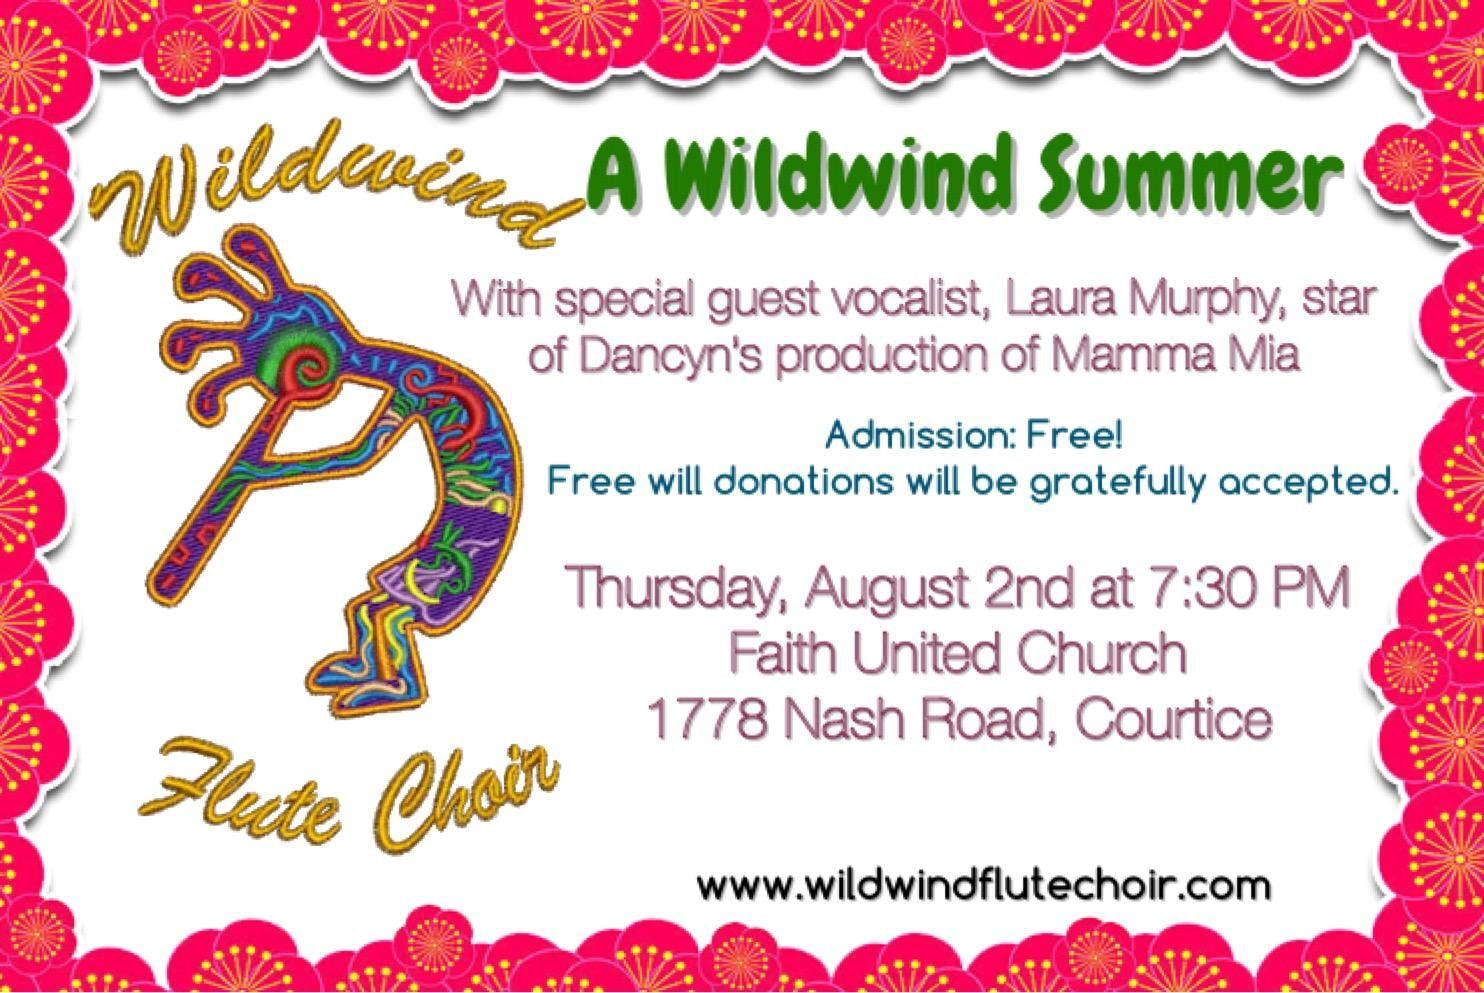 A Wildwind Summer Concert at Faith United Church, Courtice